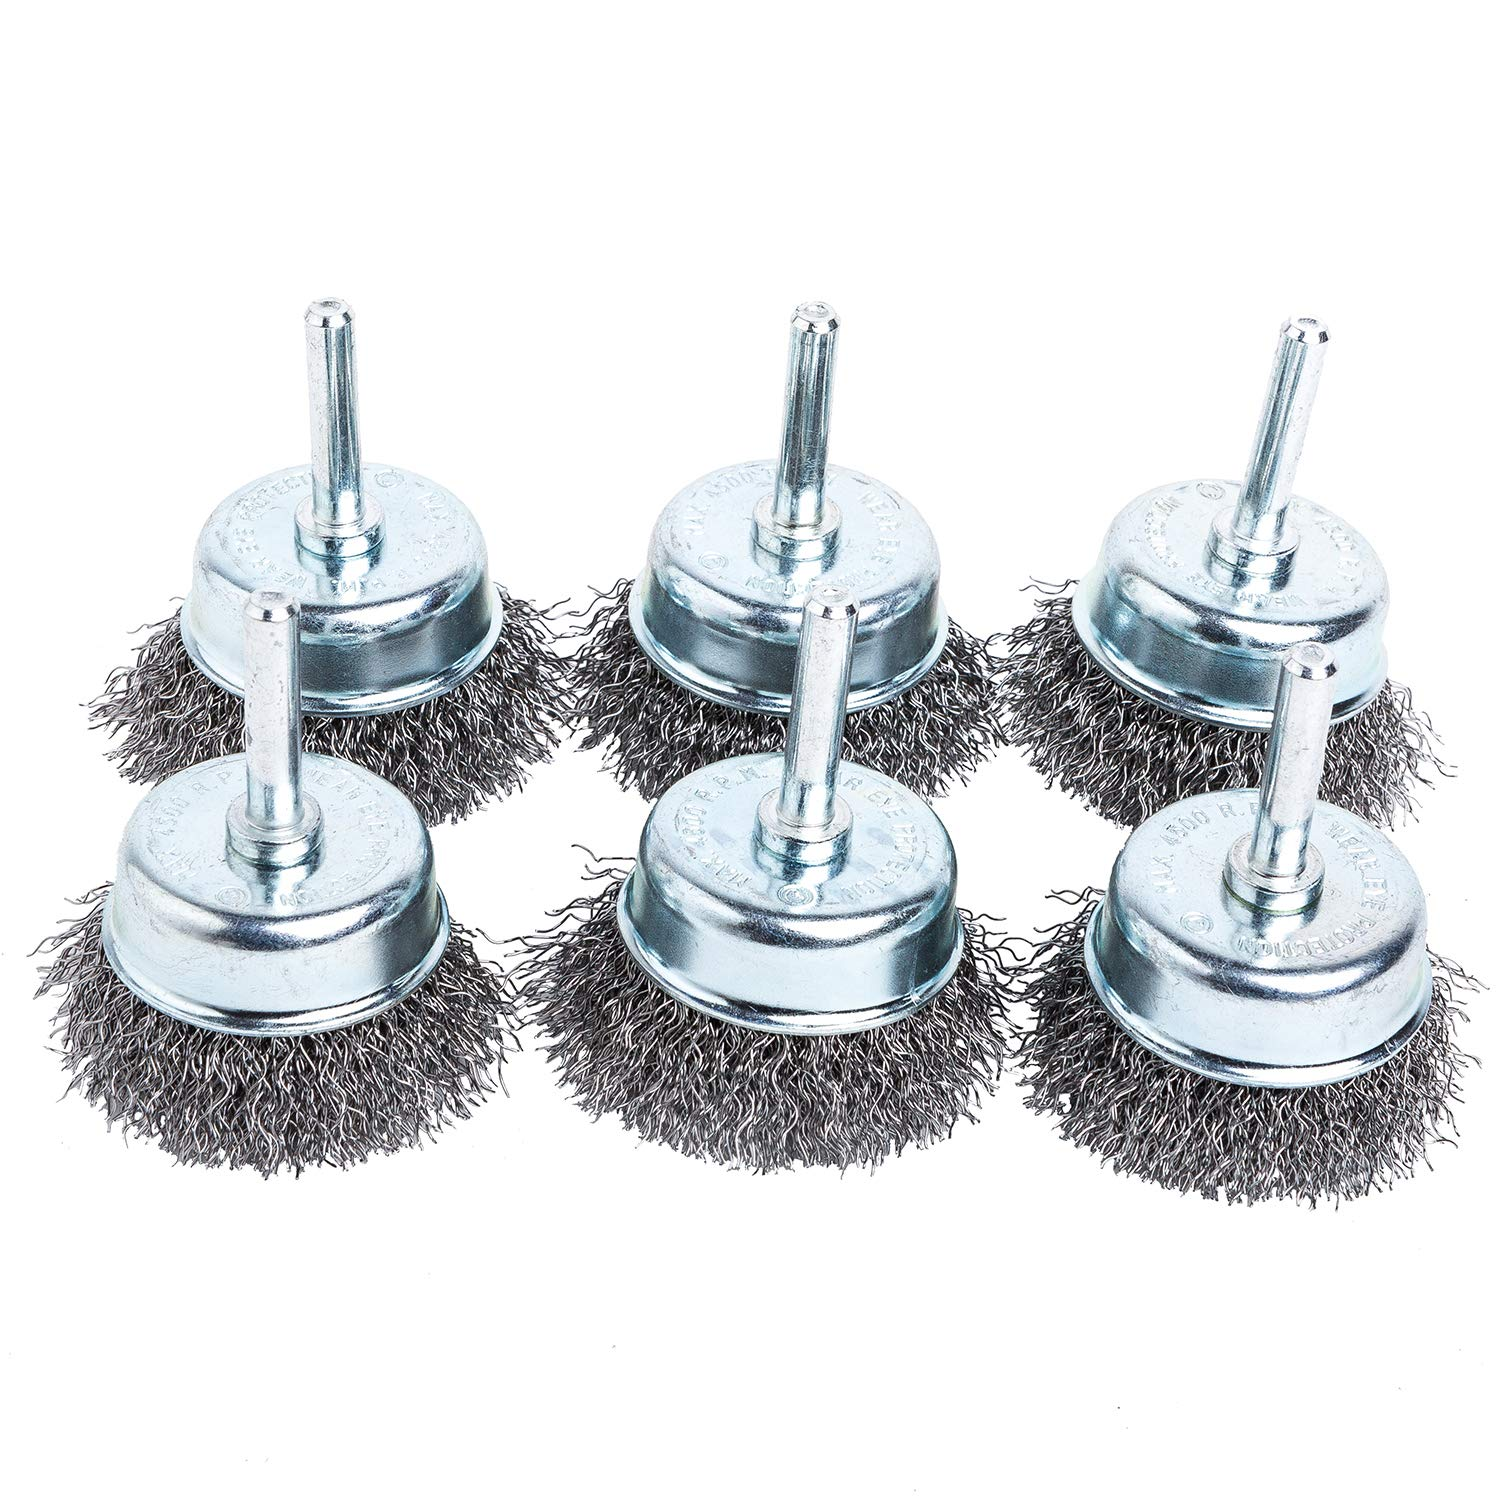 HOYIN Crimped Wire Cup Brush |6 Pack|2in 0.0118in Coarse Carbon Steel|1/4in Shank|for Drill